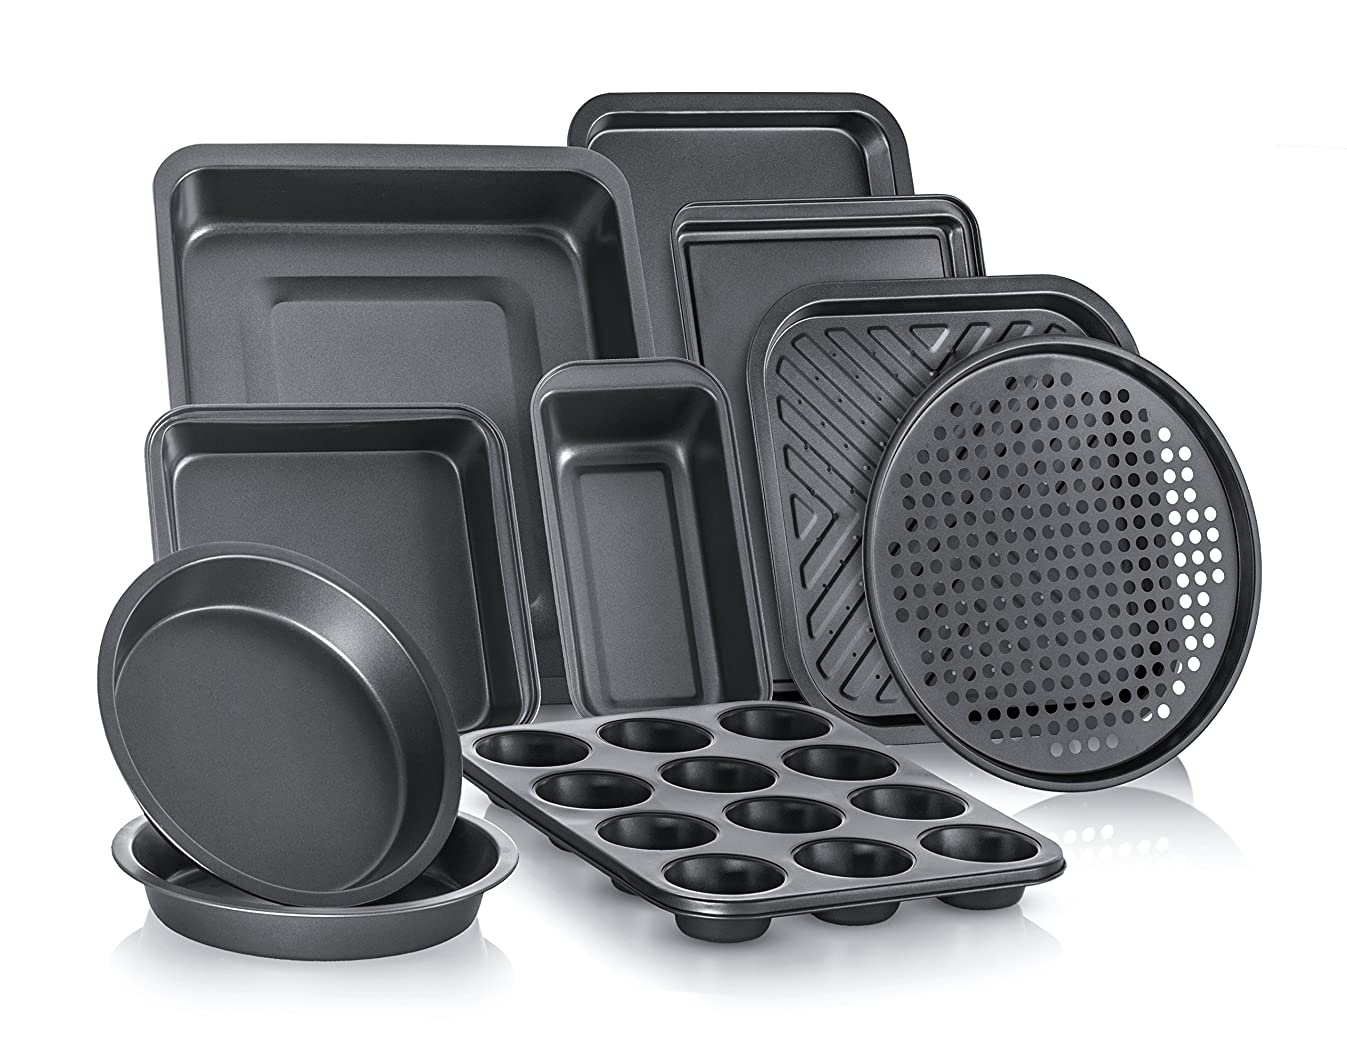 Perlli Complete Bakeware Set 10-Piece Non-Stick, Oven Crisper, Pizza Tray, Roasting, Loaf, Muffin, Square, 2 Round Cake Baking Pans, Large and Medium Nonstick Cookie Sheet Bake Ware for Home Kitchen